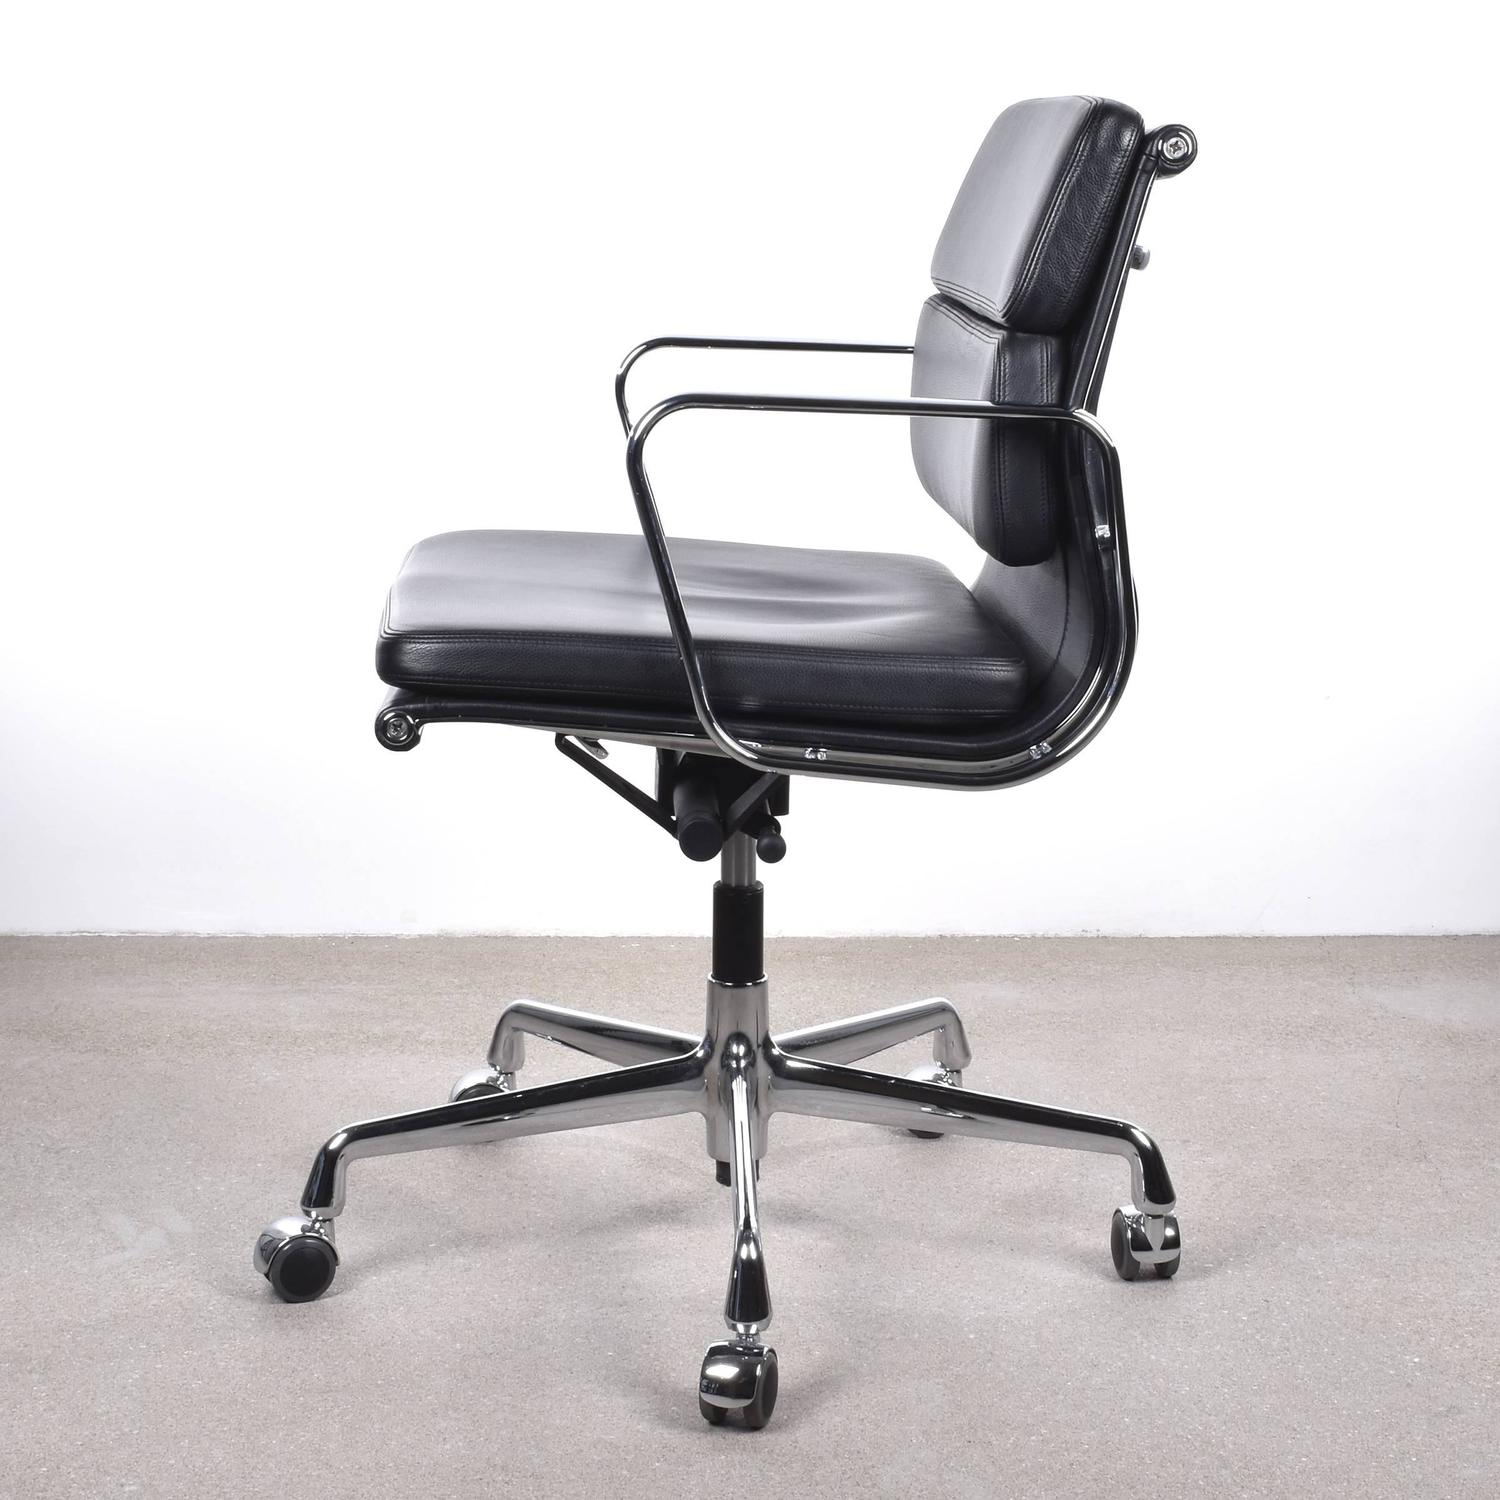 Eames Soft Pad Management Chair Eames Ea217 Management Soft Pad Vitra Office Chair At 1stdibs